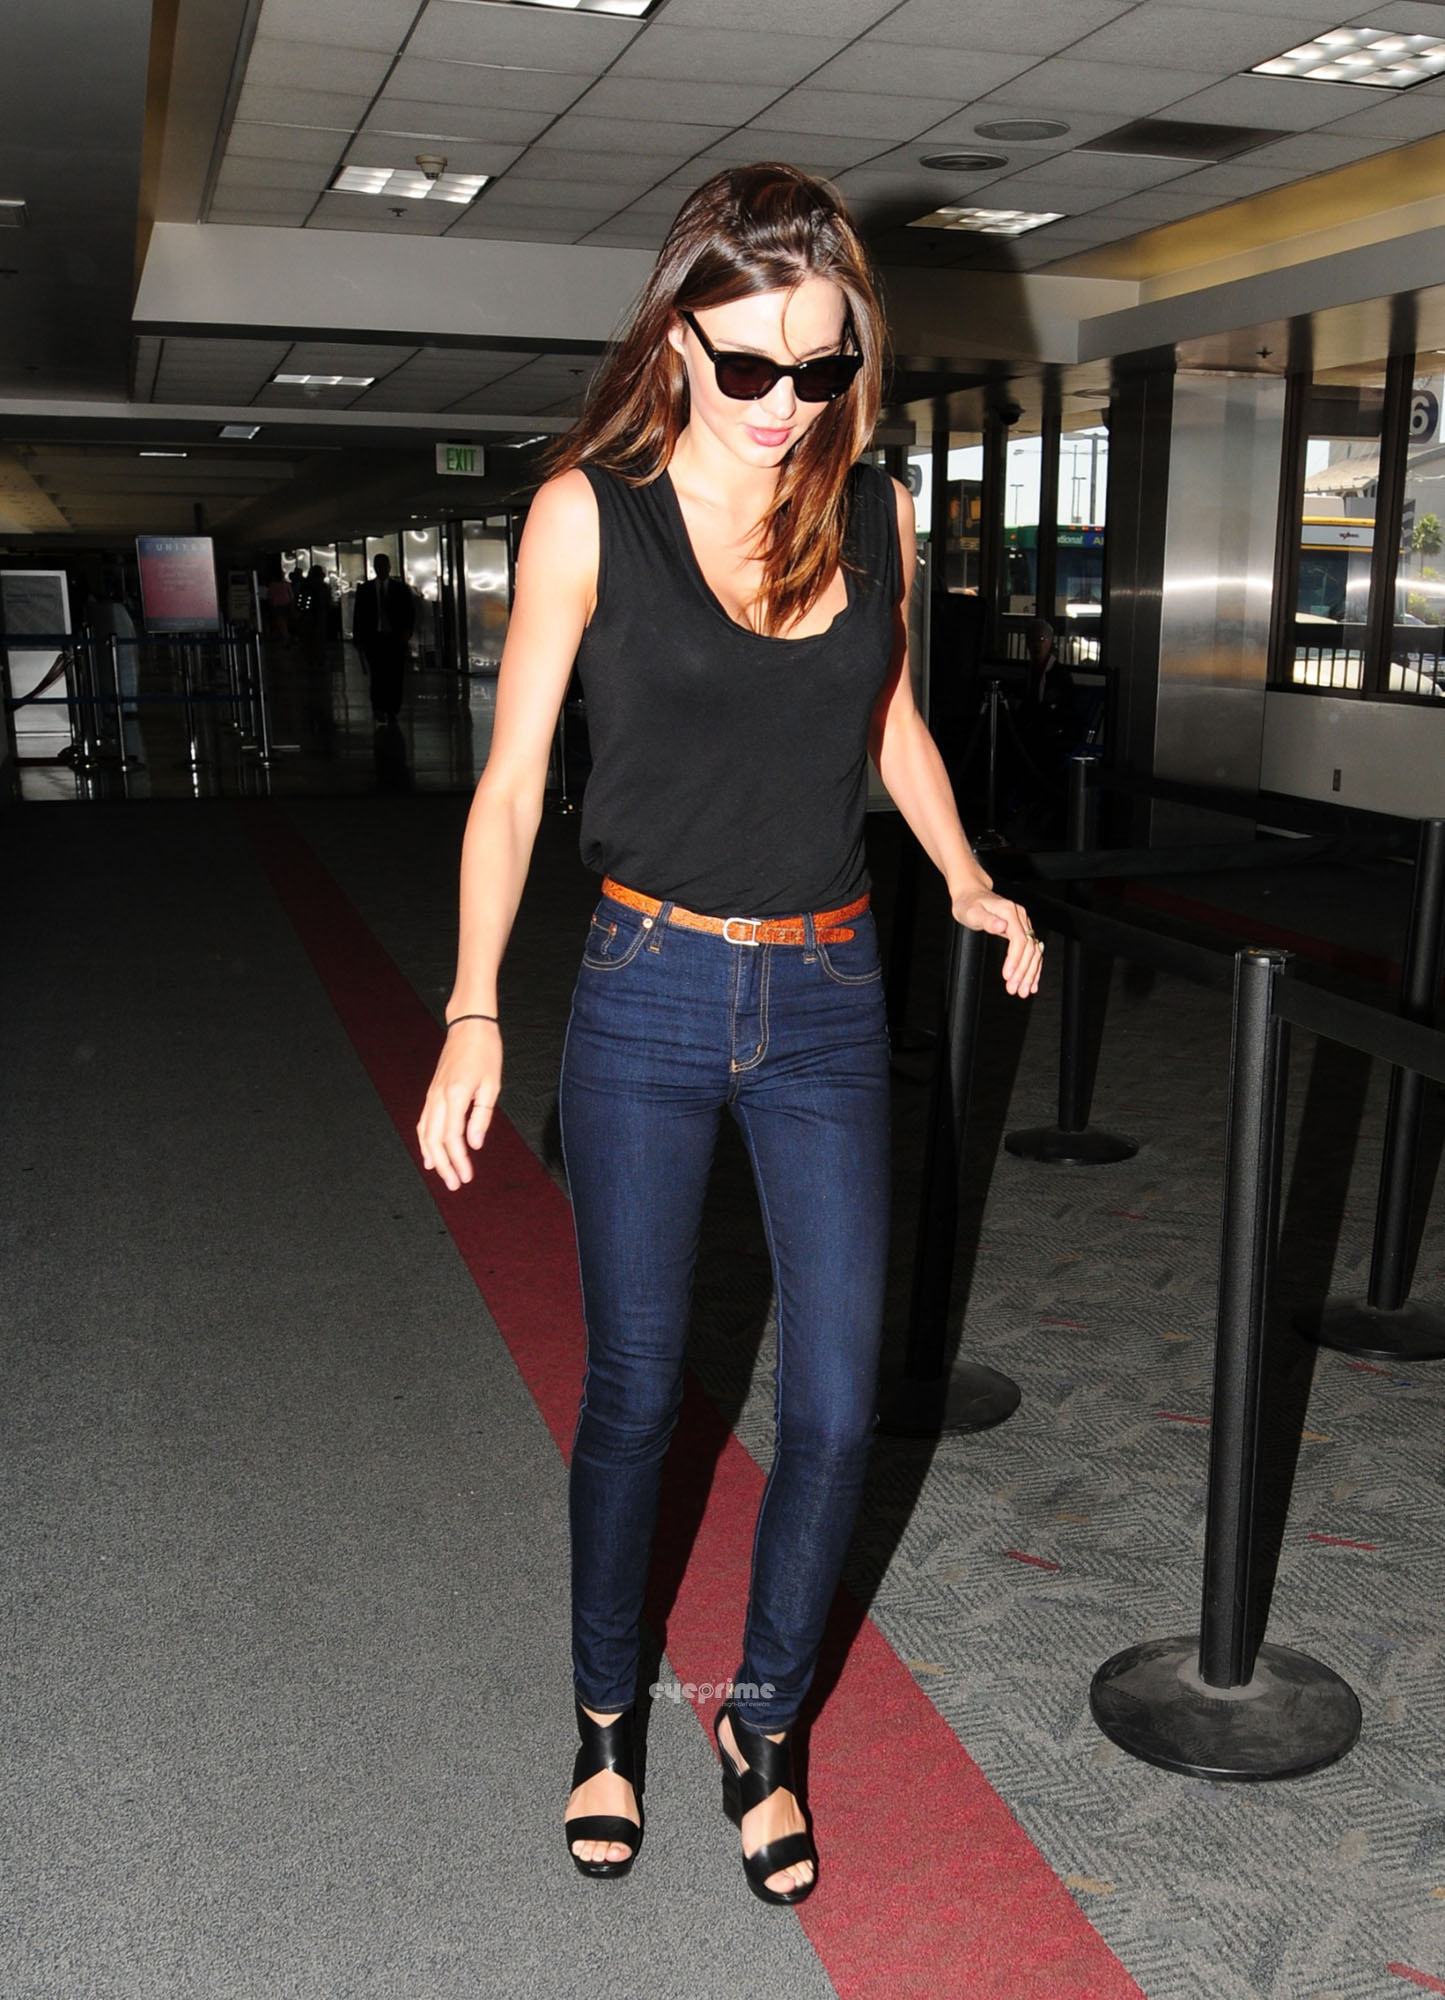 Miranda Kerr Flies Out of LAX in a Sexy Tank Top and Tight Jeans, Jul 18